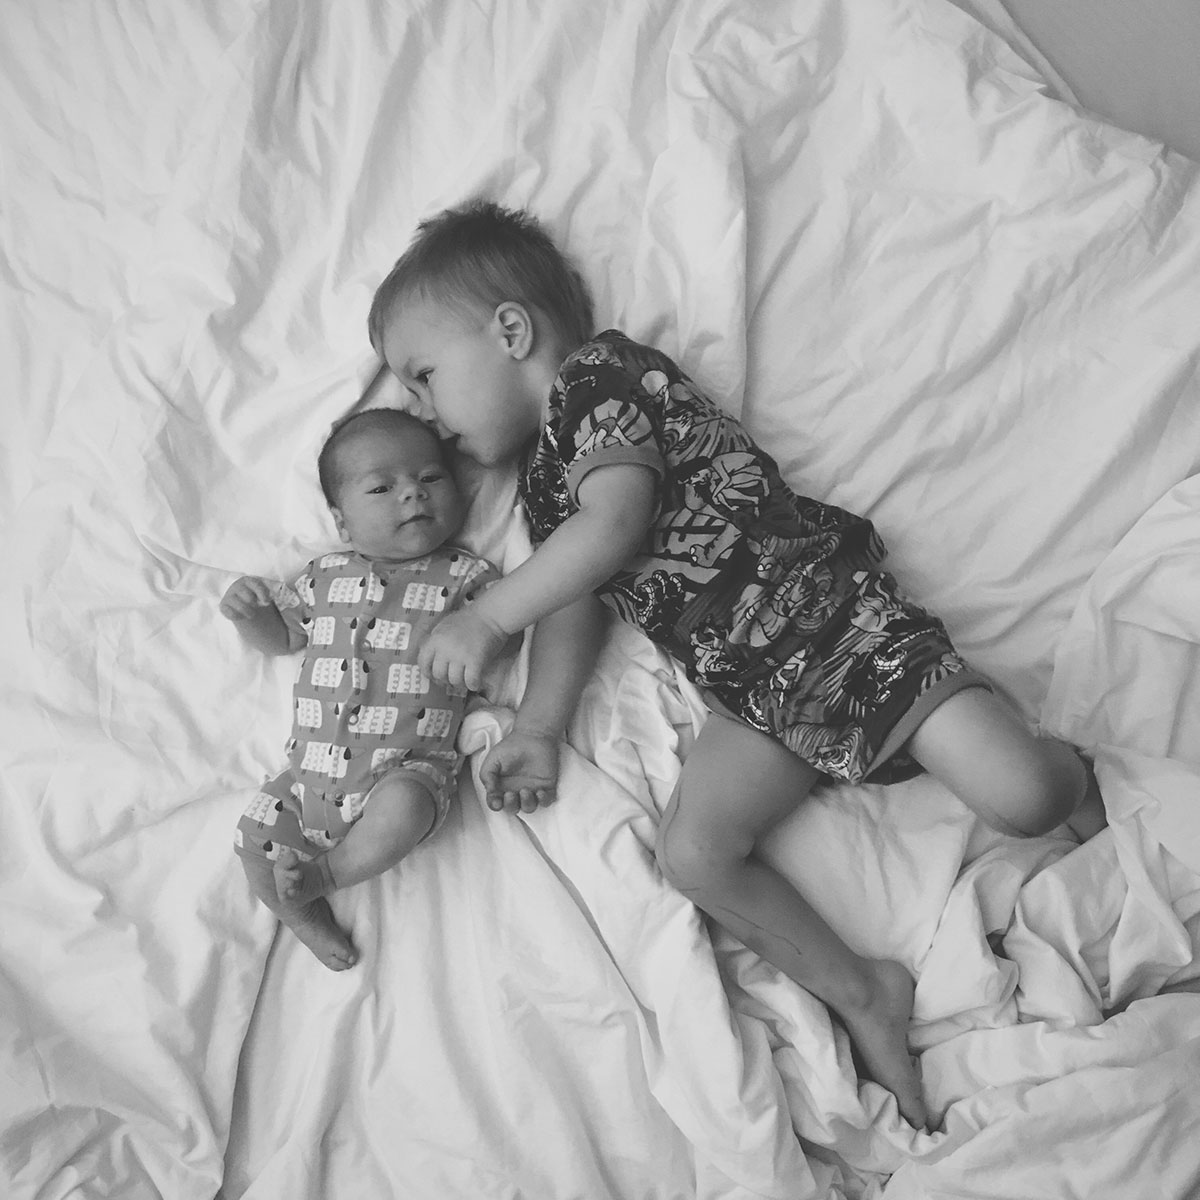 Our month in insta-snaps; September 2016 - Newborn baby and his toddler brother laying down together wearing H&M pyjamas